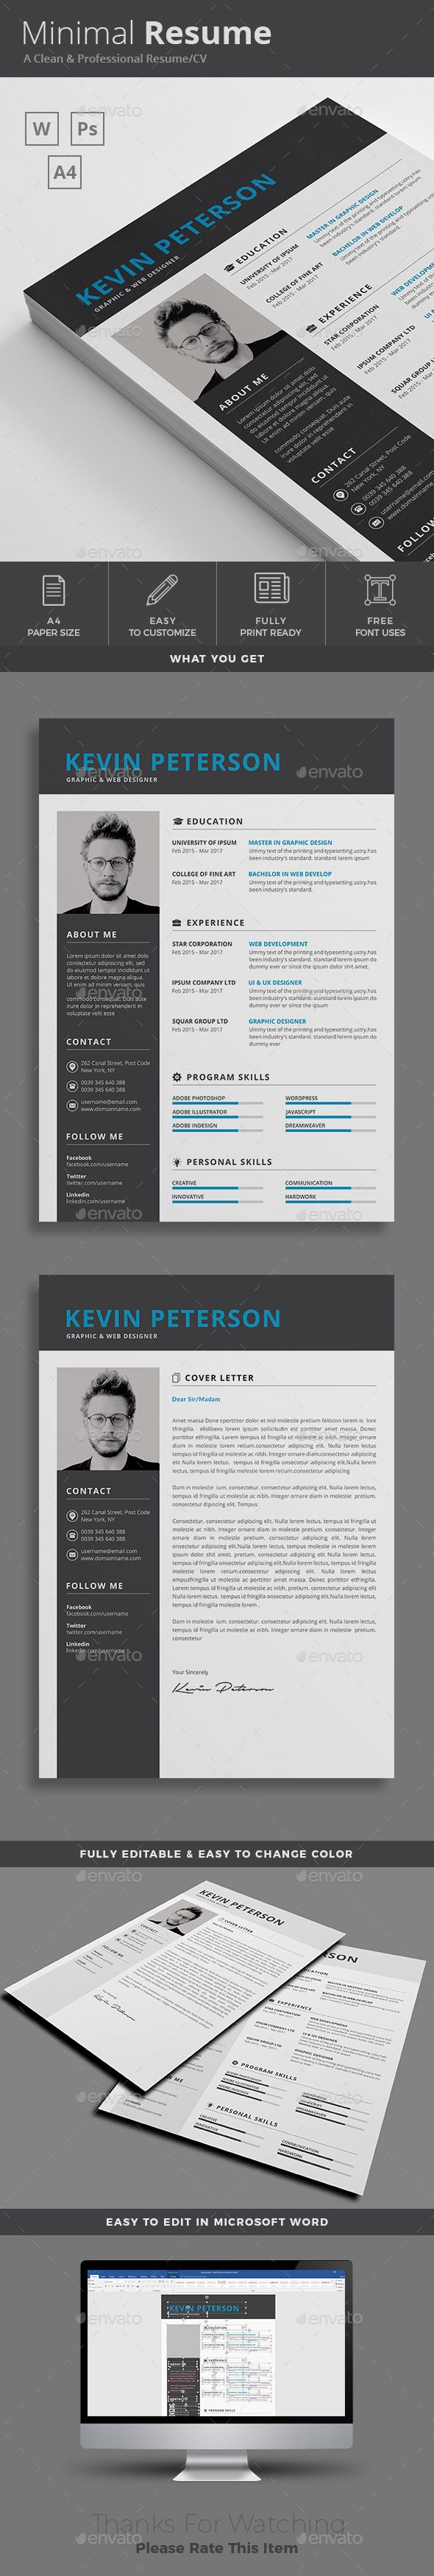 Resume 38 best Resume Design images on